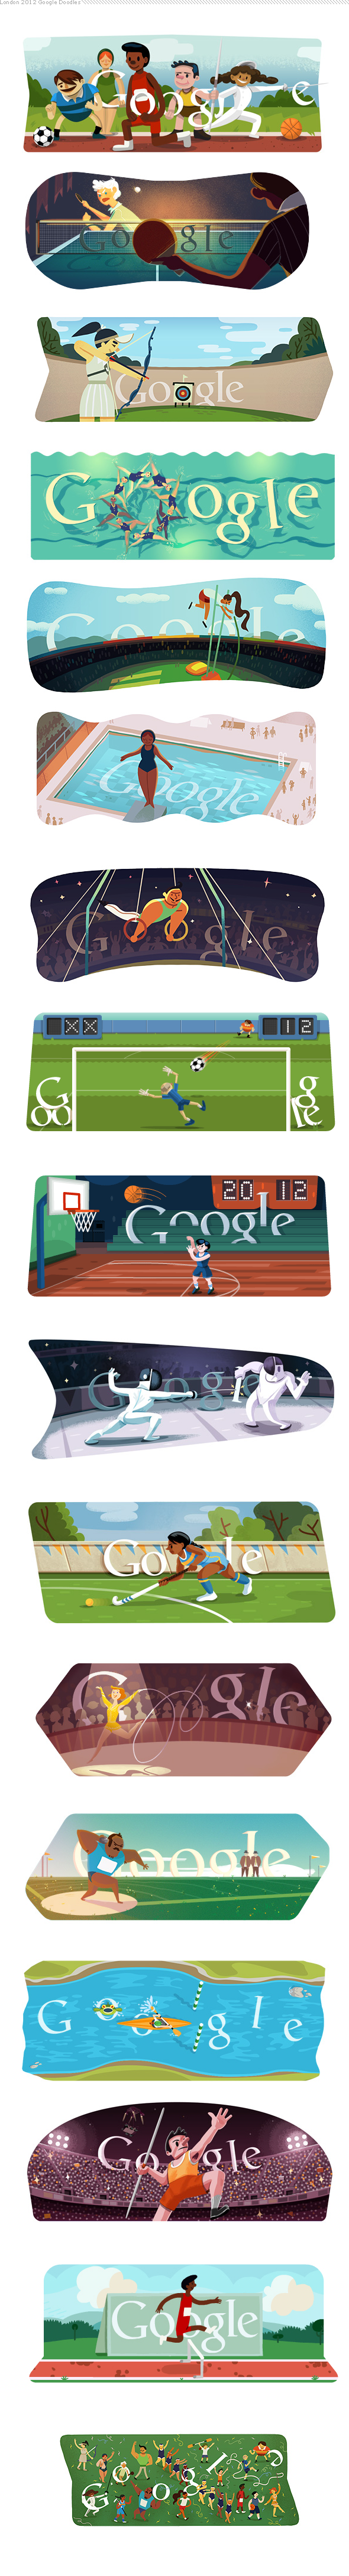 london-2012-google-doodles